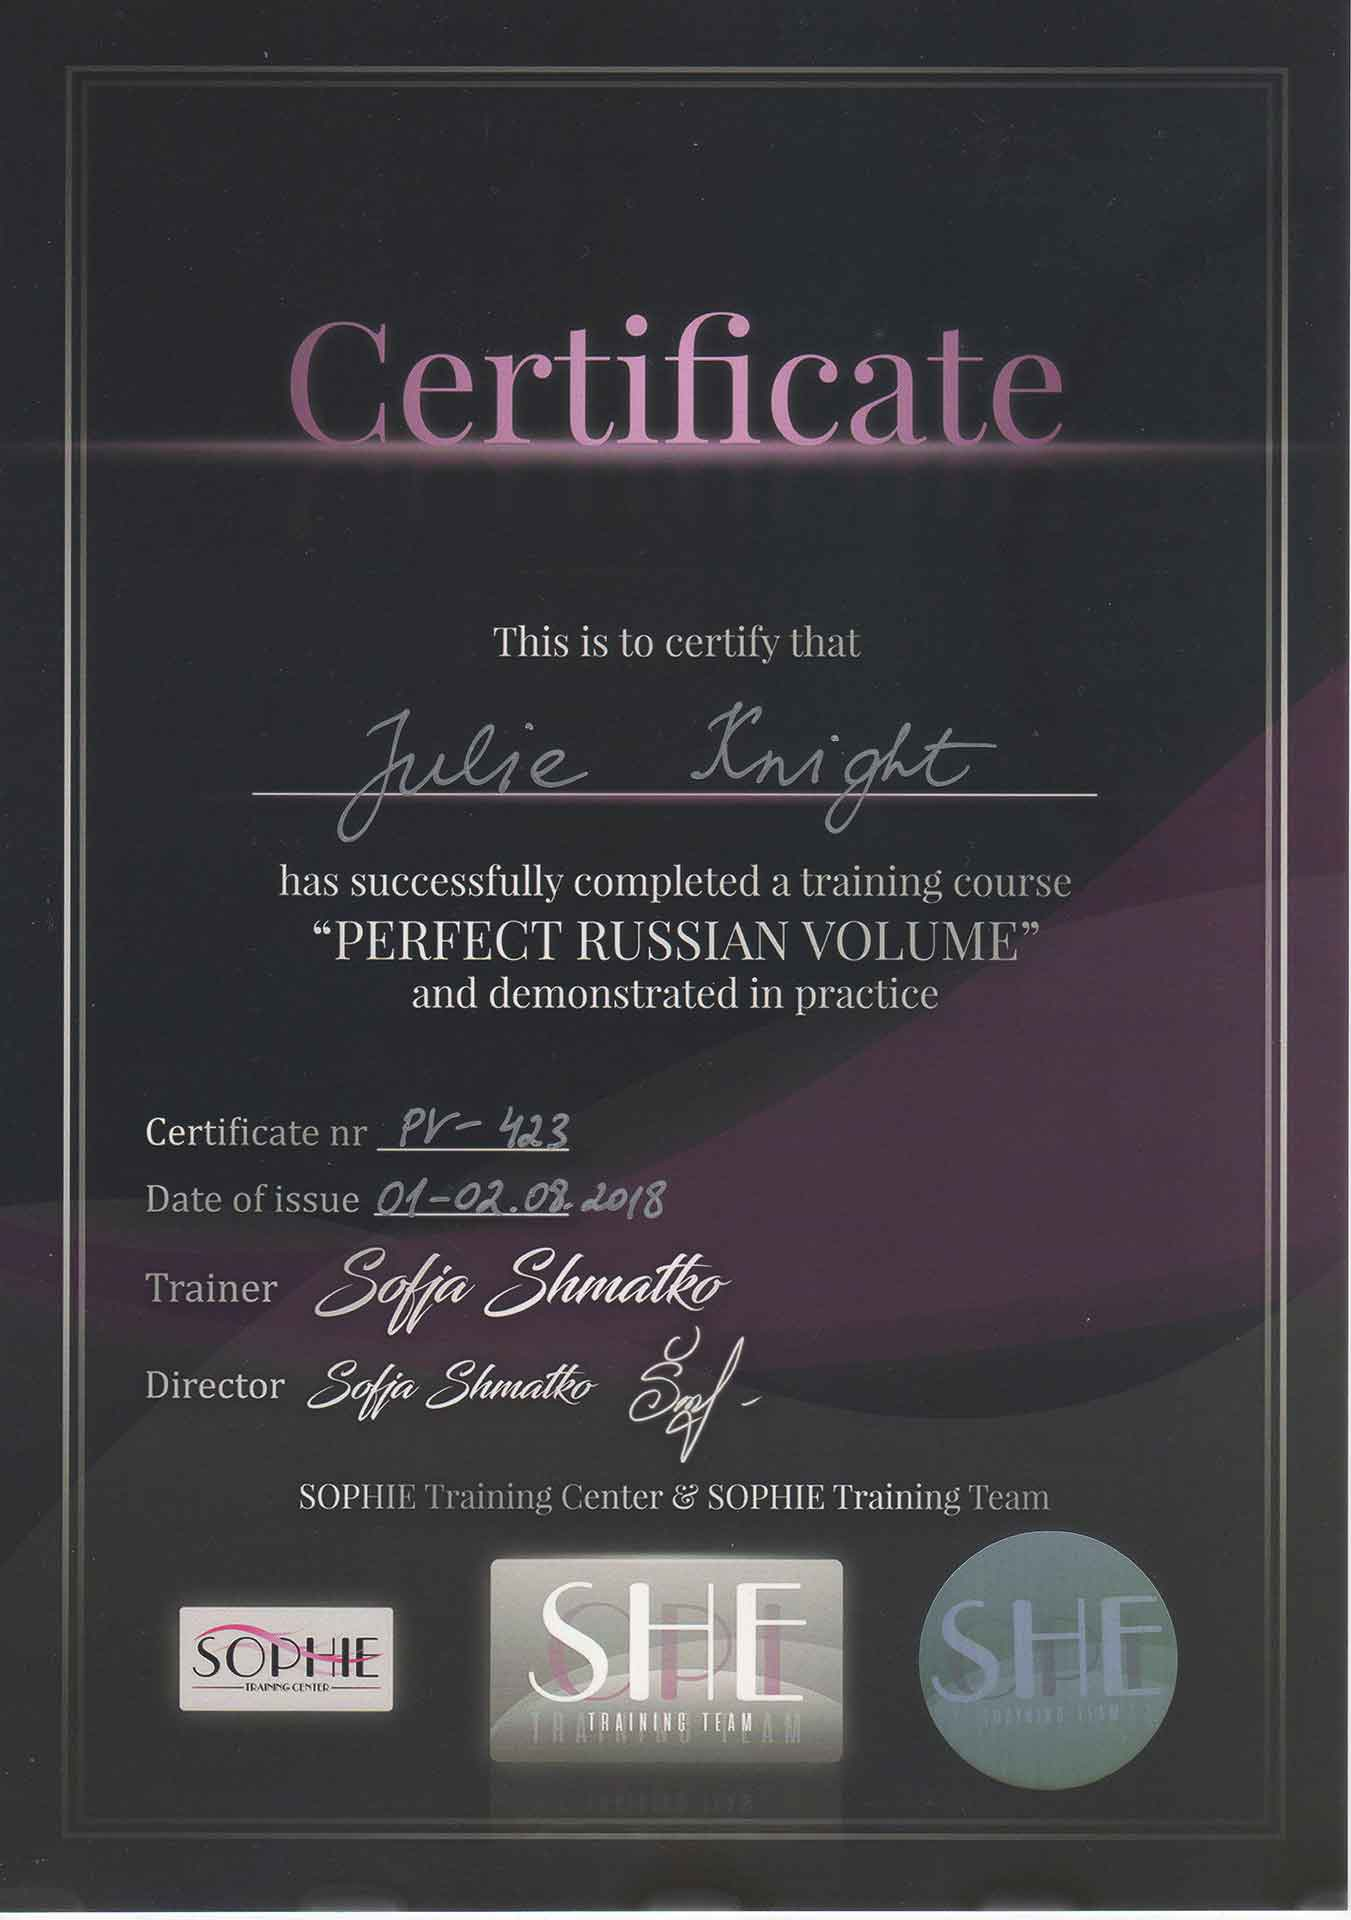 Julie-Knight-Sophie-Perfect-Russian-Volume-Certificate